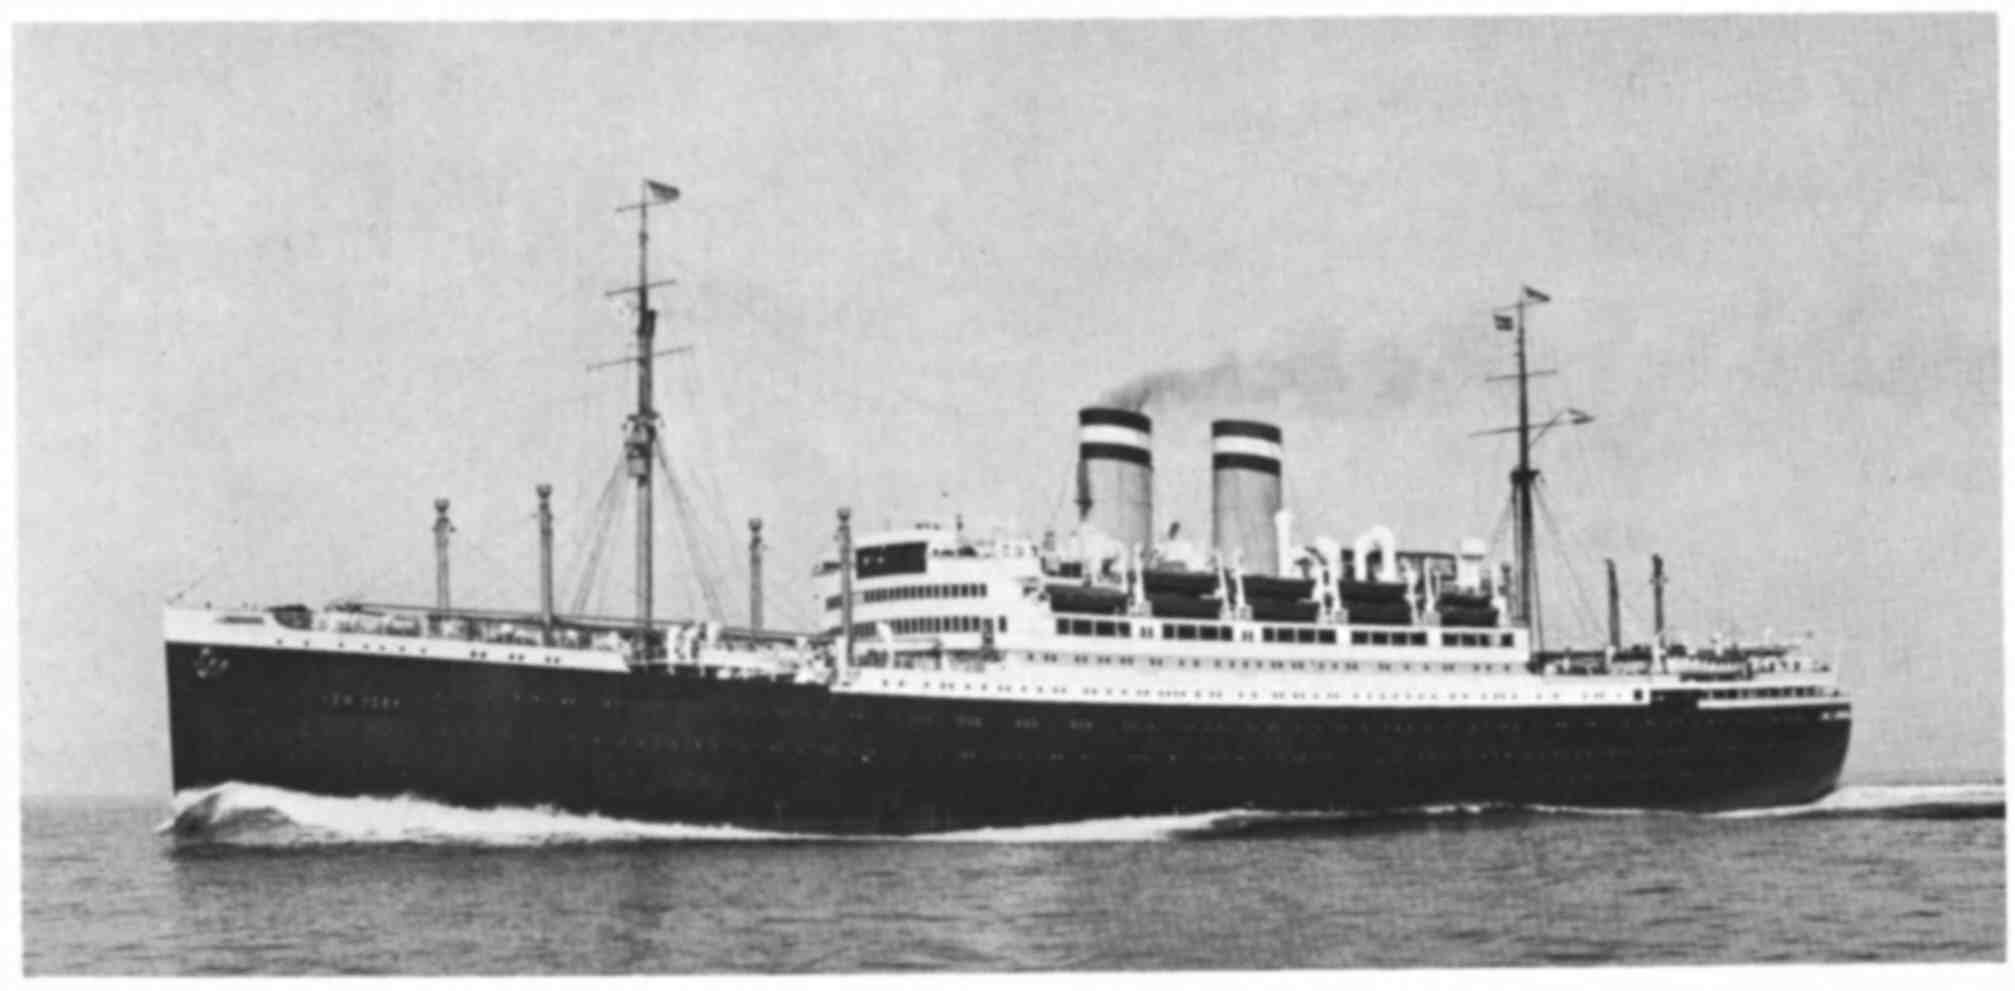 Gustav Adolf Mengersen sailed to America on May 10th 1929 from Hamburg Germany